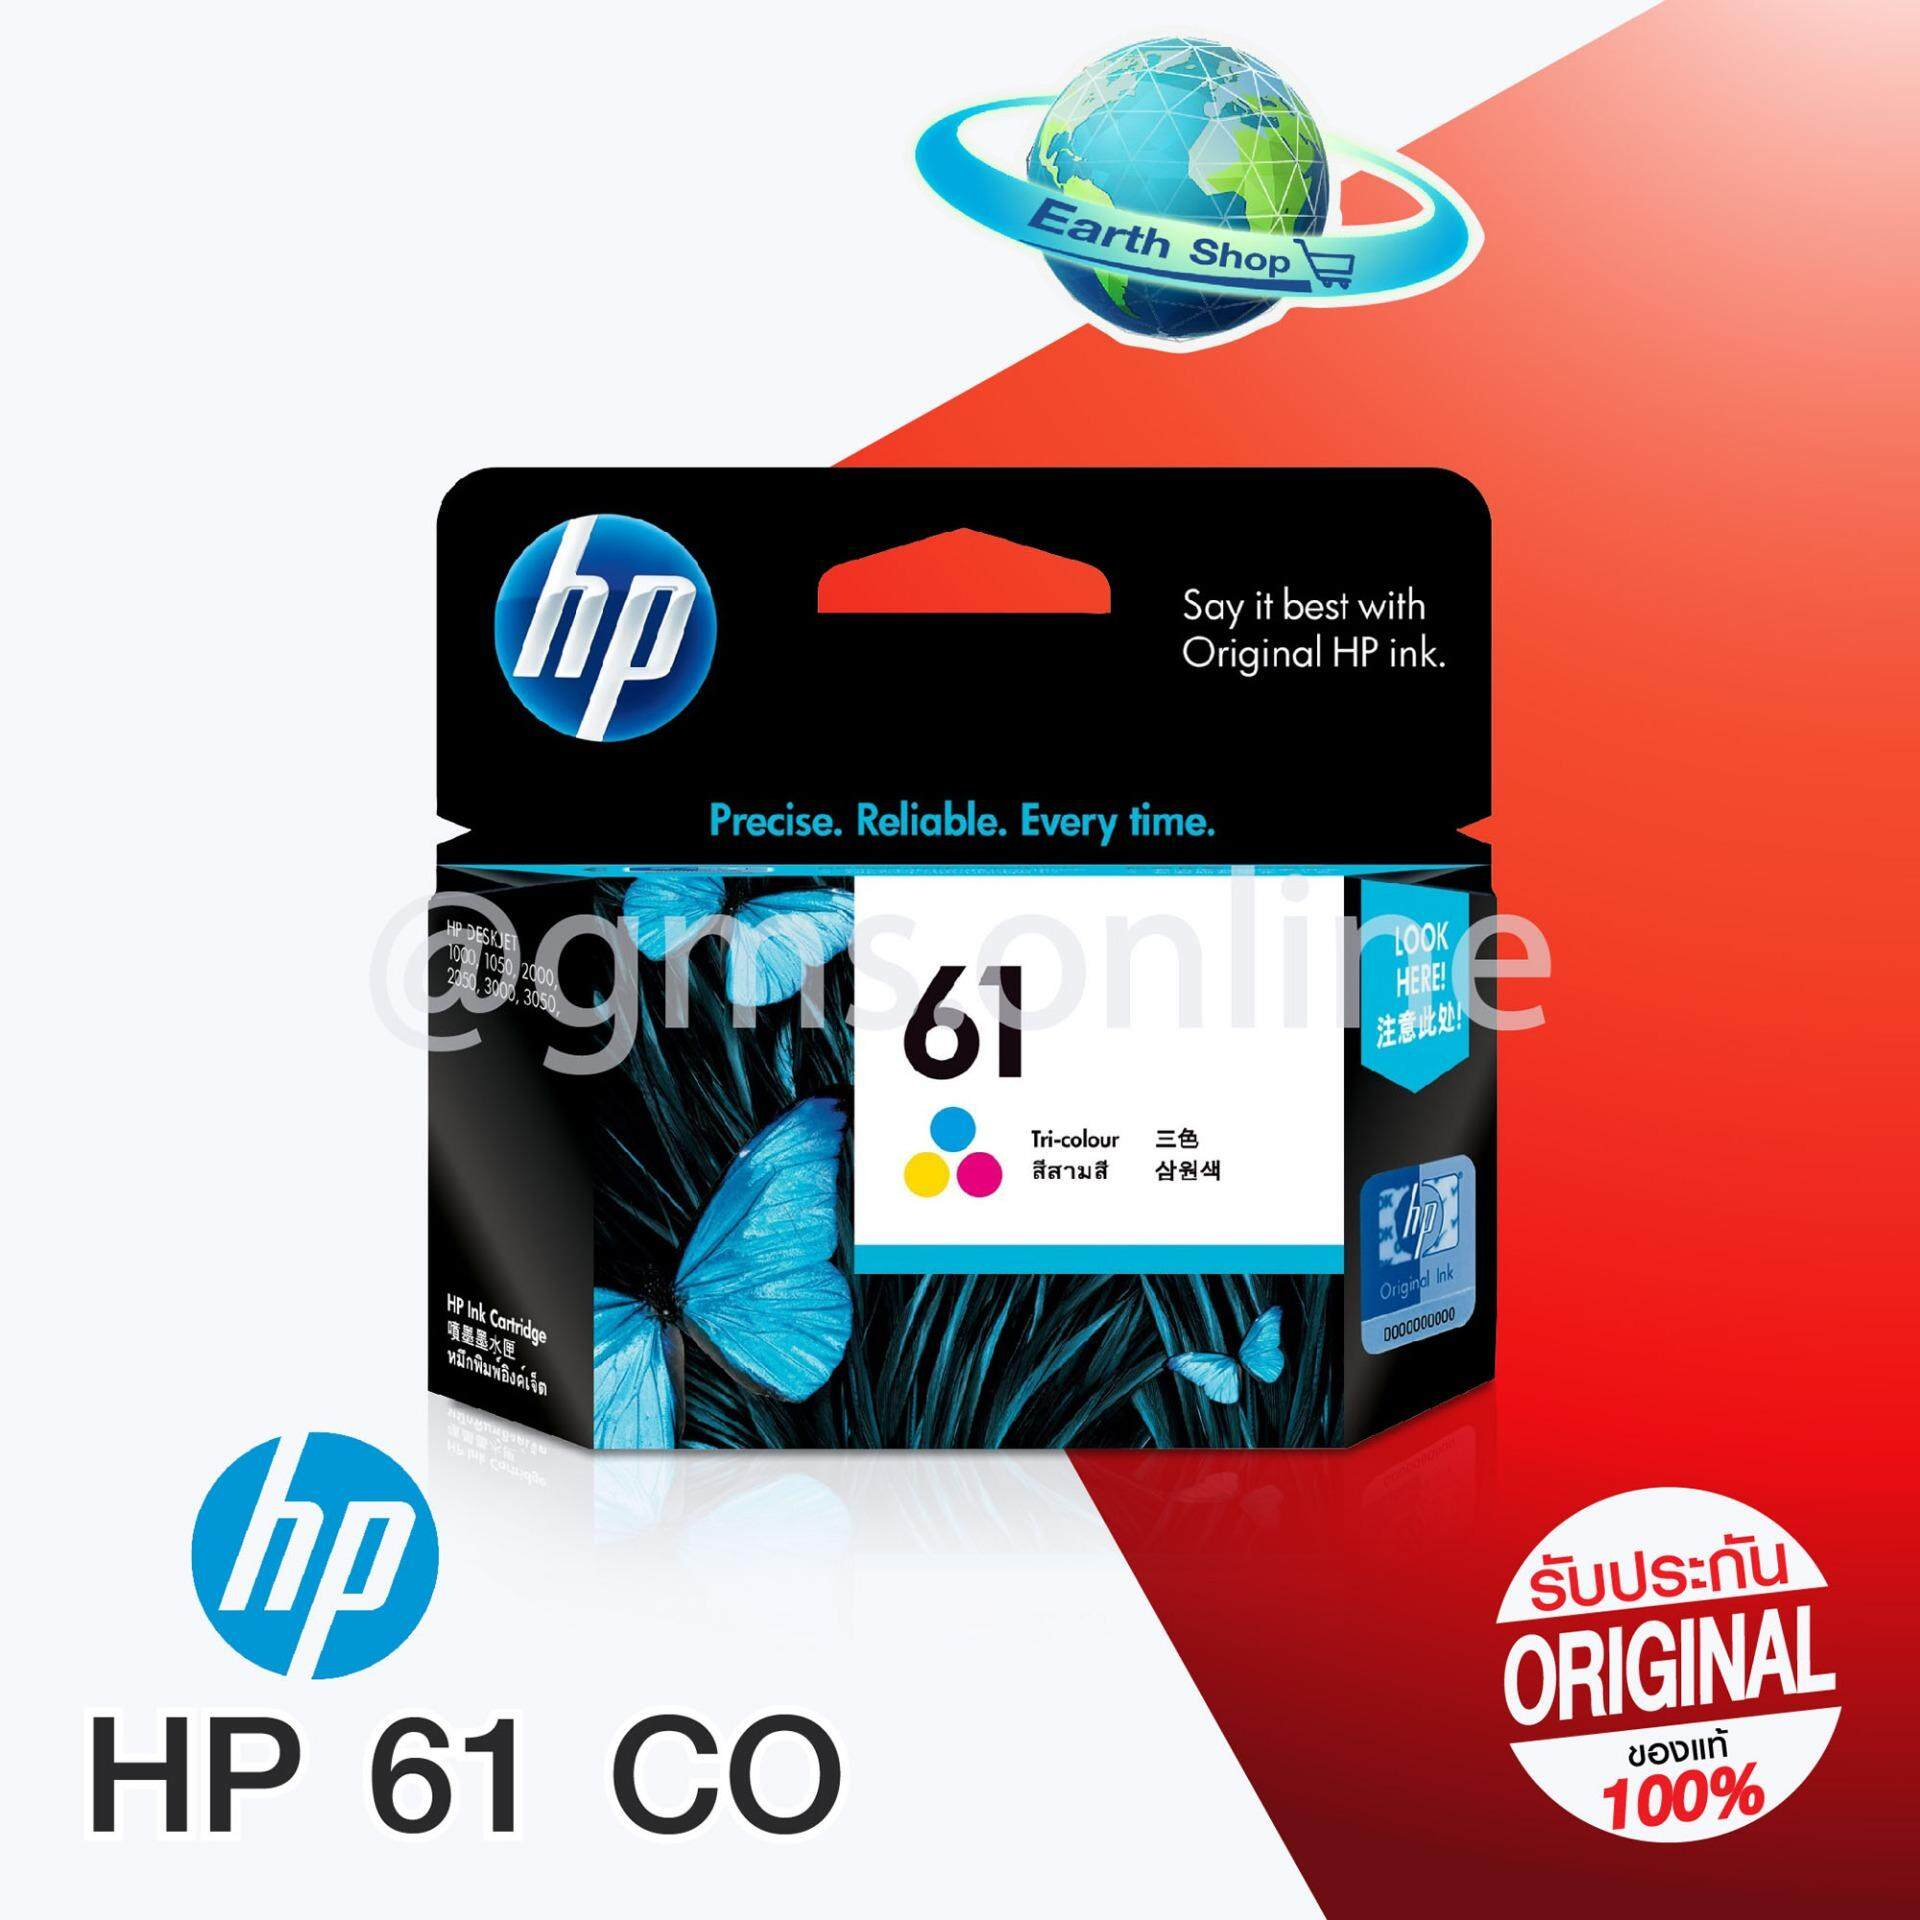 HP 61 Ink Cartridge (Tri color) ของแท้HP Deskjet 1000, 1050, 2000, 2050, 3000, 3050A, 1010, 1510